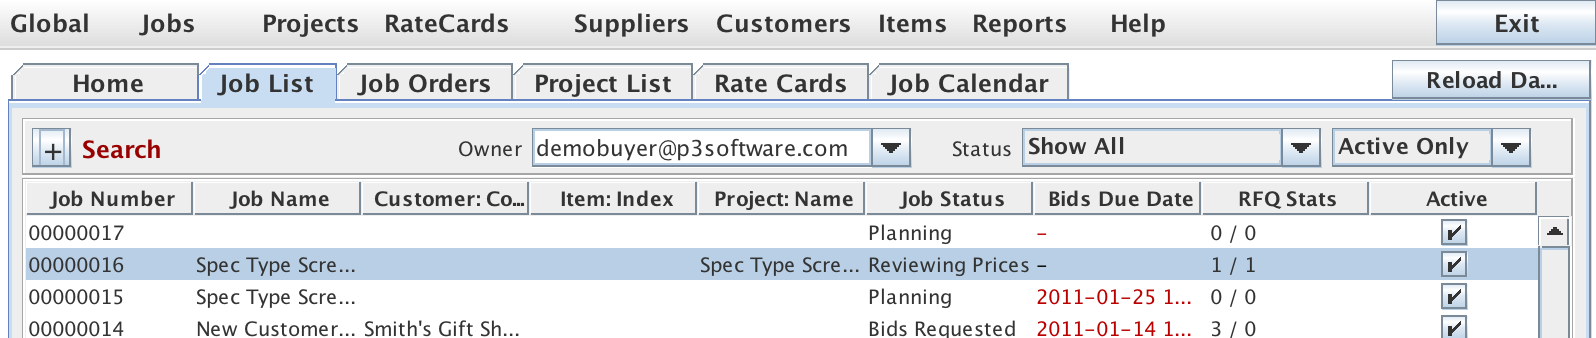 Job List panel showing the Job List tab